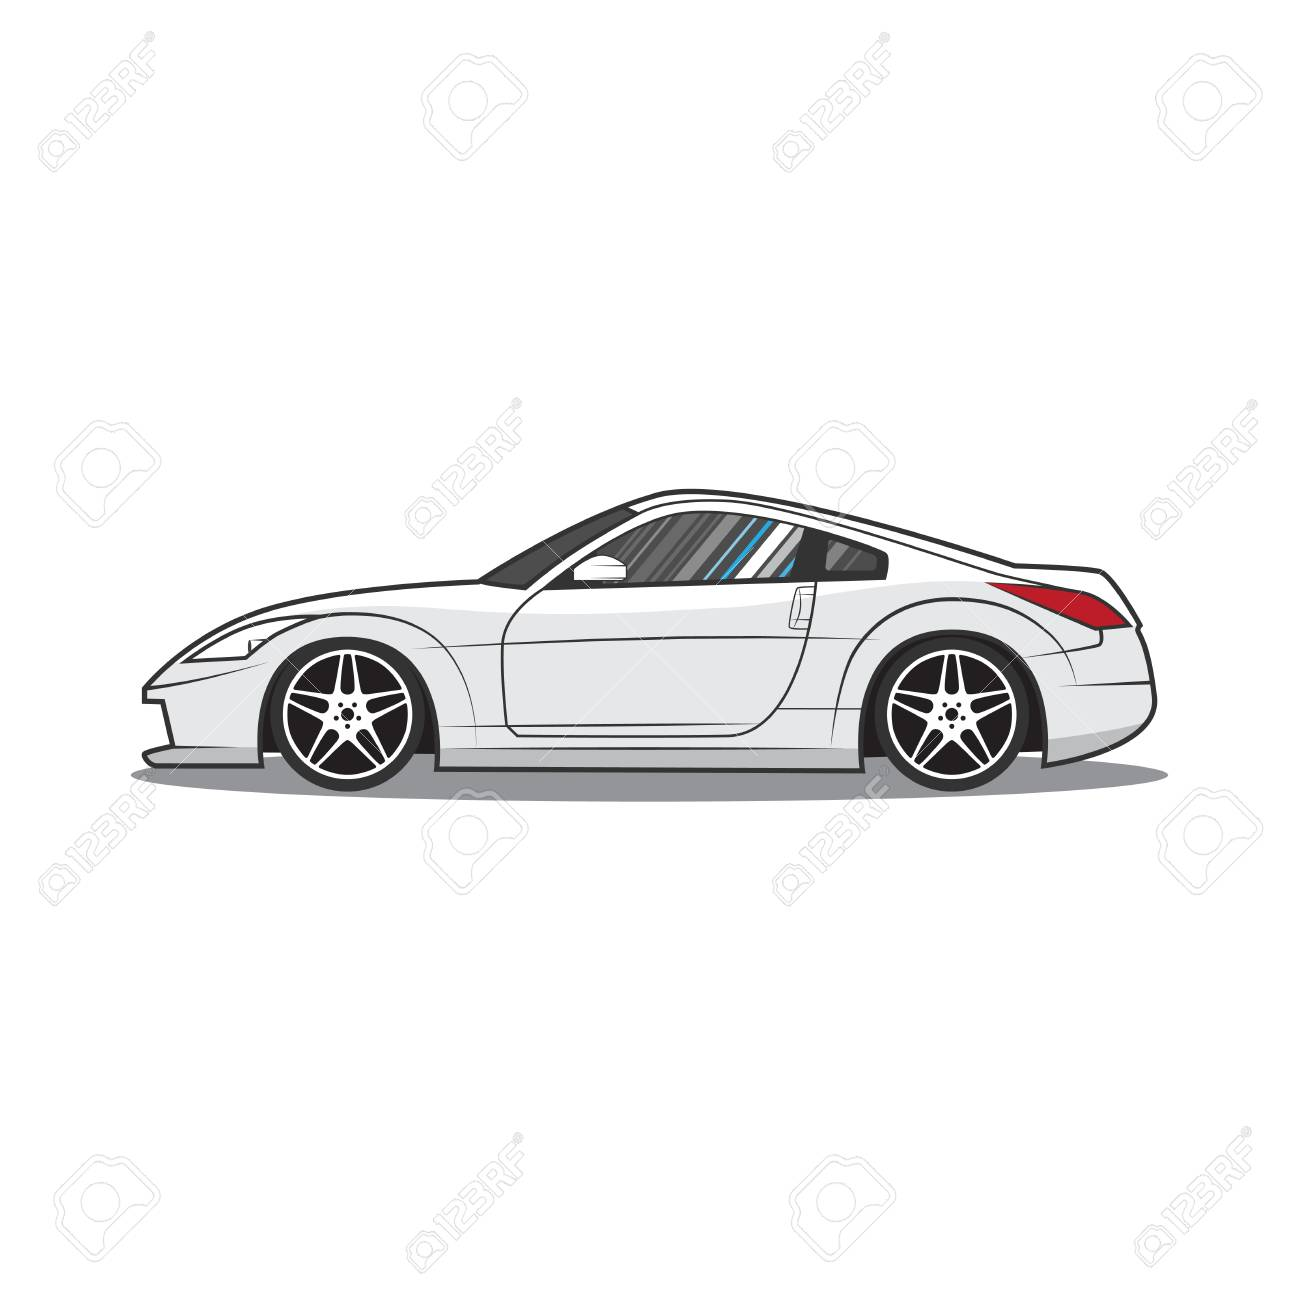 Japan Sport Car Car Sketch Side View Royalty Free Cliparts